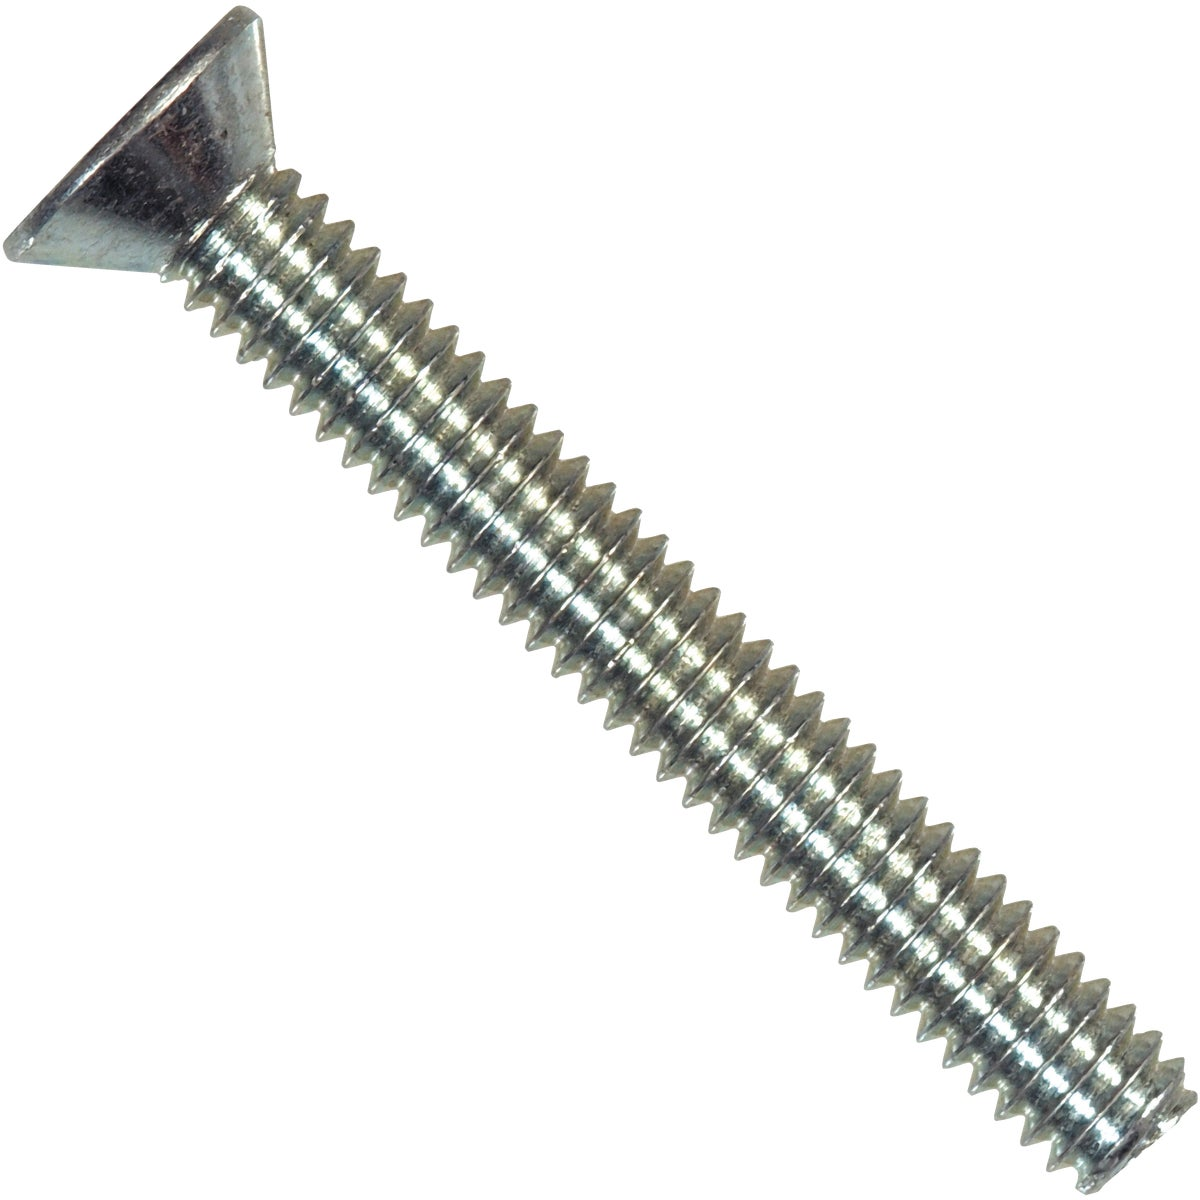 6-32X1/2 FH MACH SCREW - 101033 by Hillman Fastener